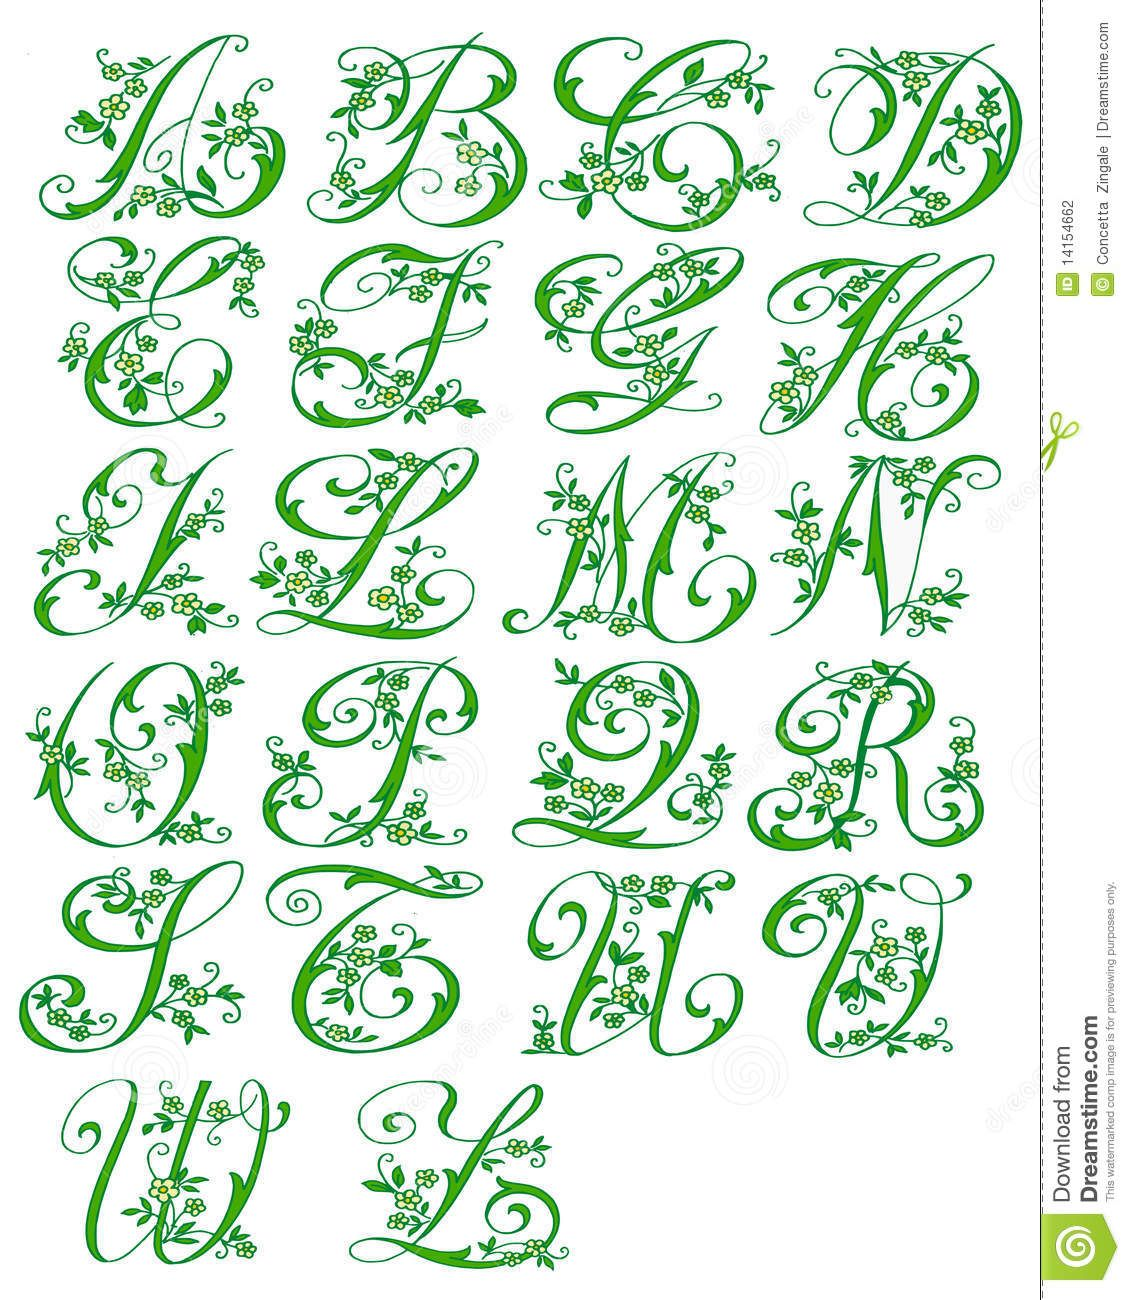 Worksheets Images Of All Alphabet Cursive Letter girlie letter designs the picture shows all letters of alphabet cursive floral stock illustration colors 14154662